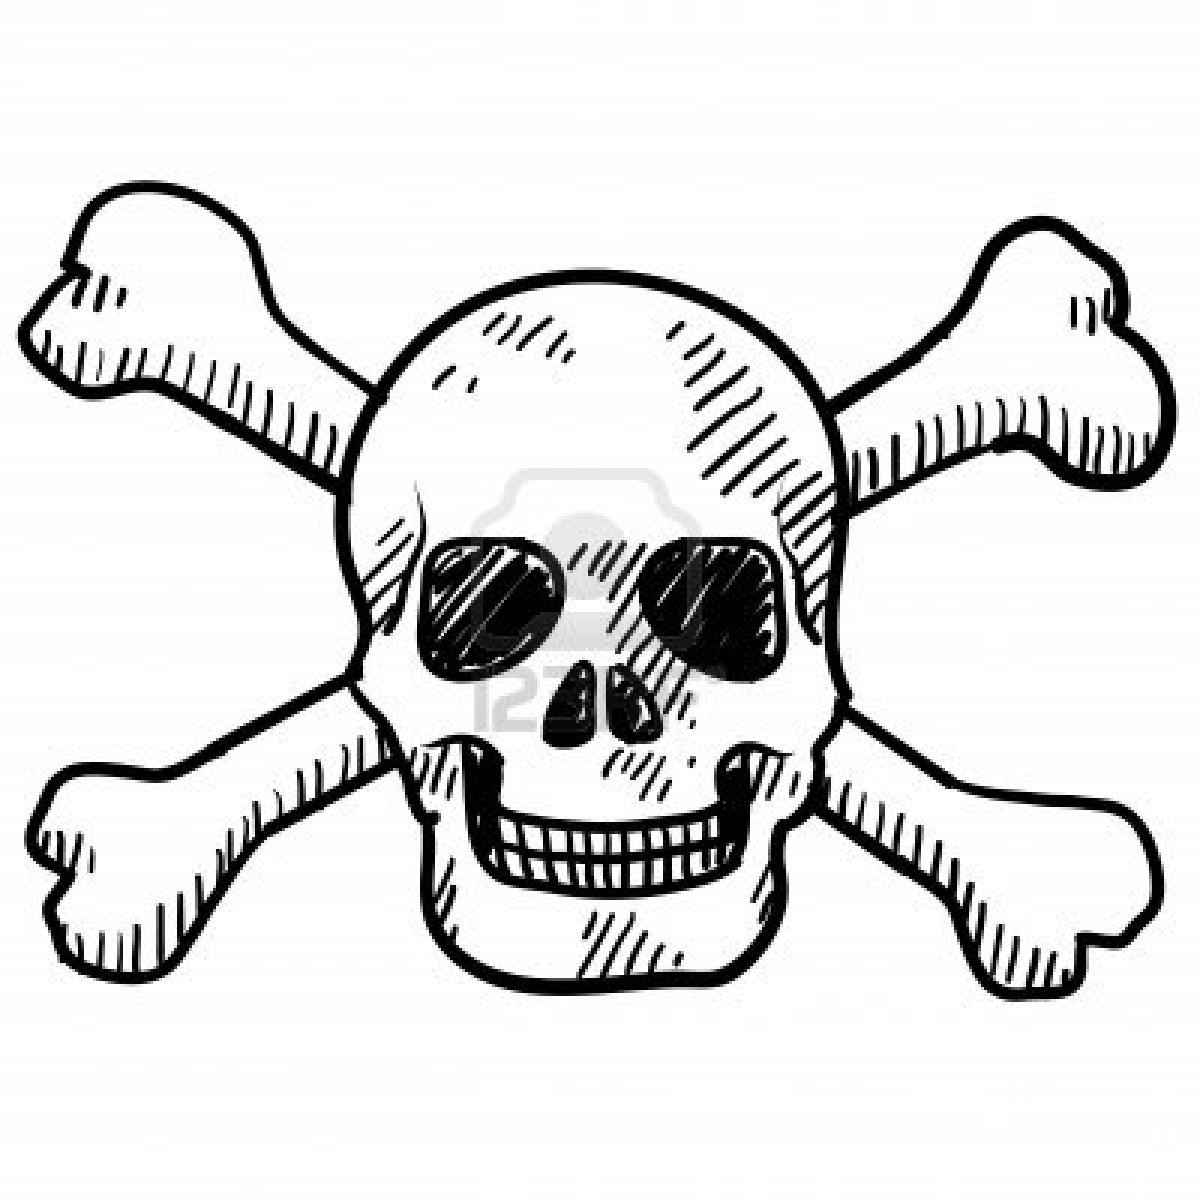 Watch furthermore Halloween Decoration Cutouts as well Anorexia nervosa pictures furthermore Epspark   images 319 scroll Borders as well Pirate Skull And Crossbones Coloring Pages. on scary funny videos youtube